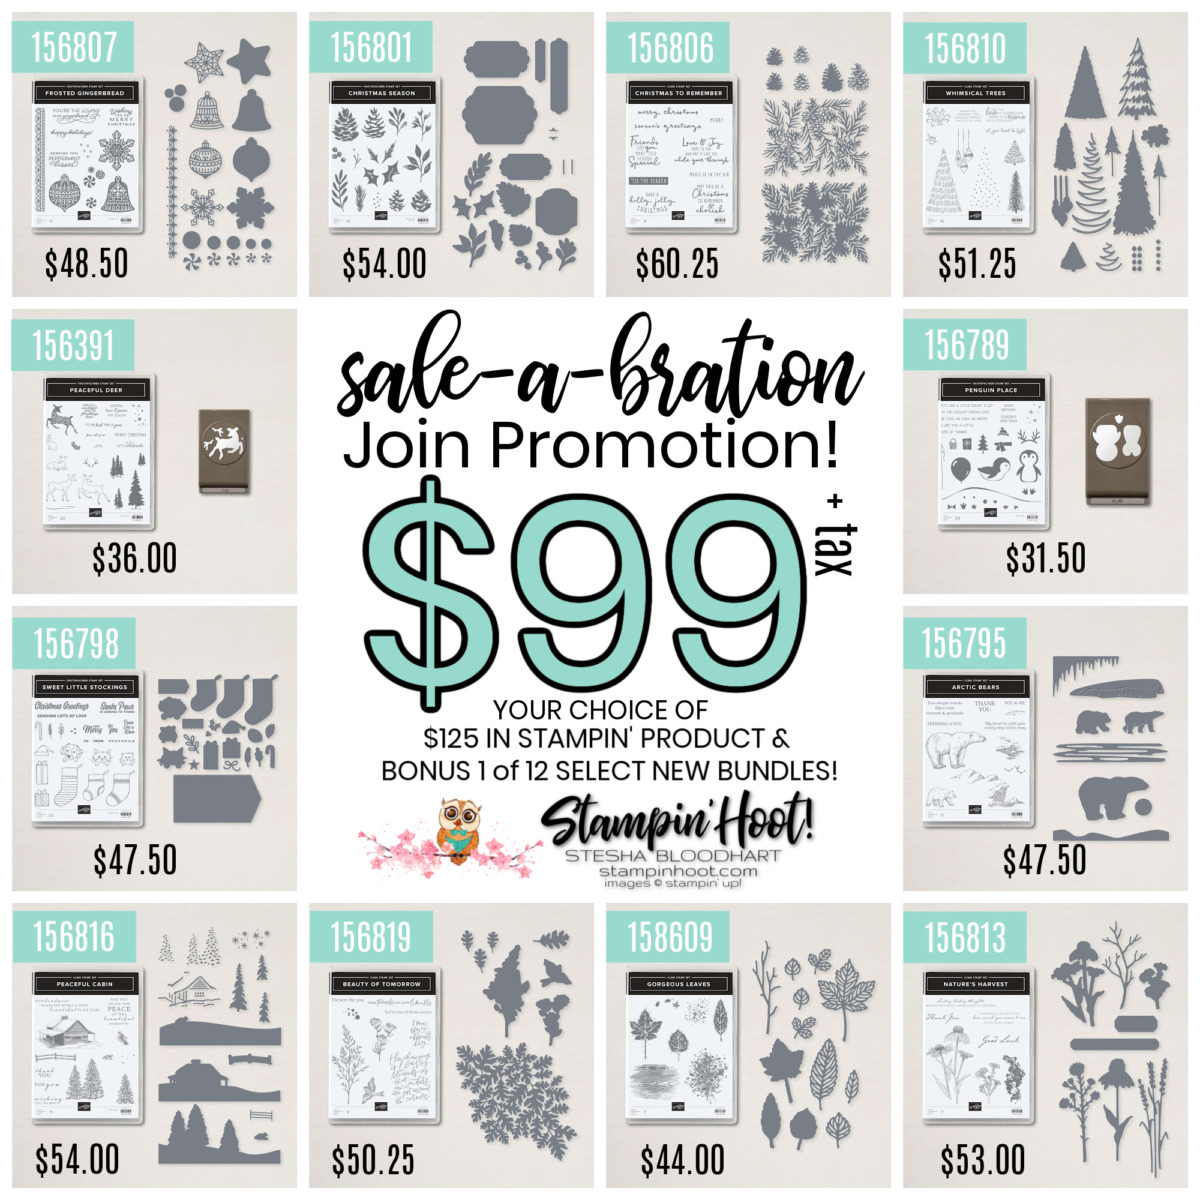 Sale-a-Bration Join Promotion - Stesha Bloodhart